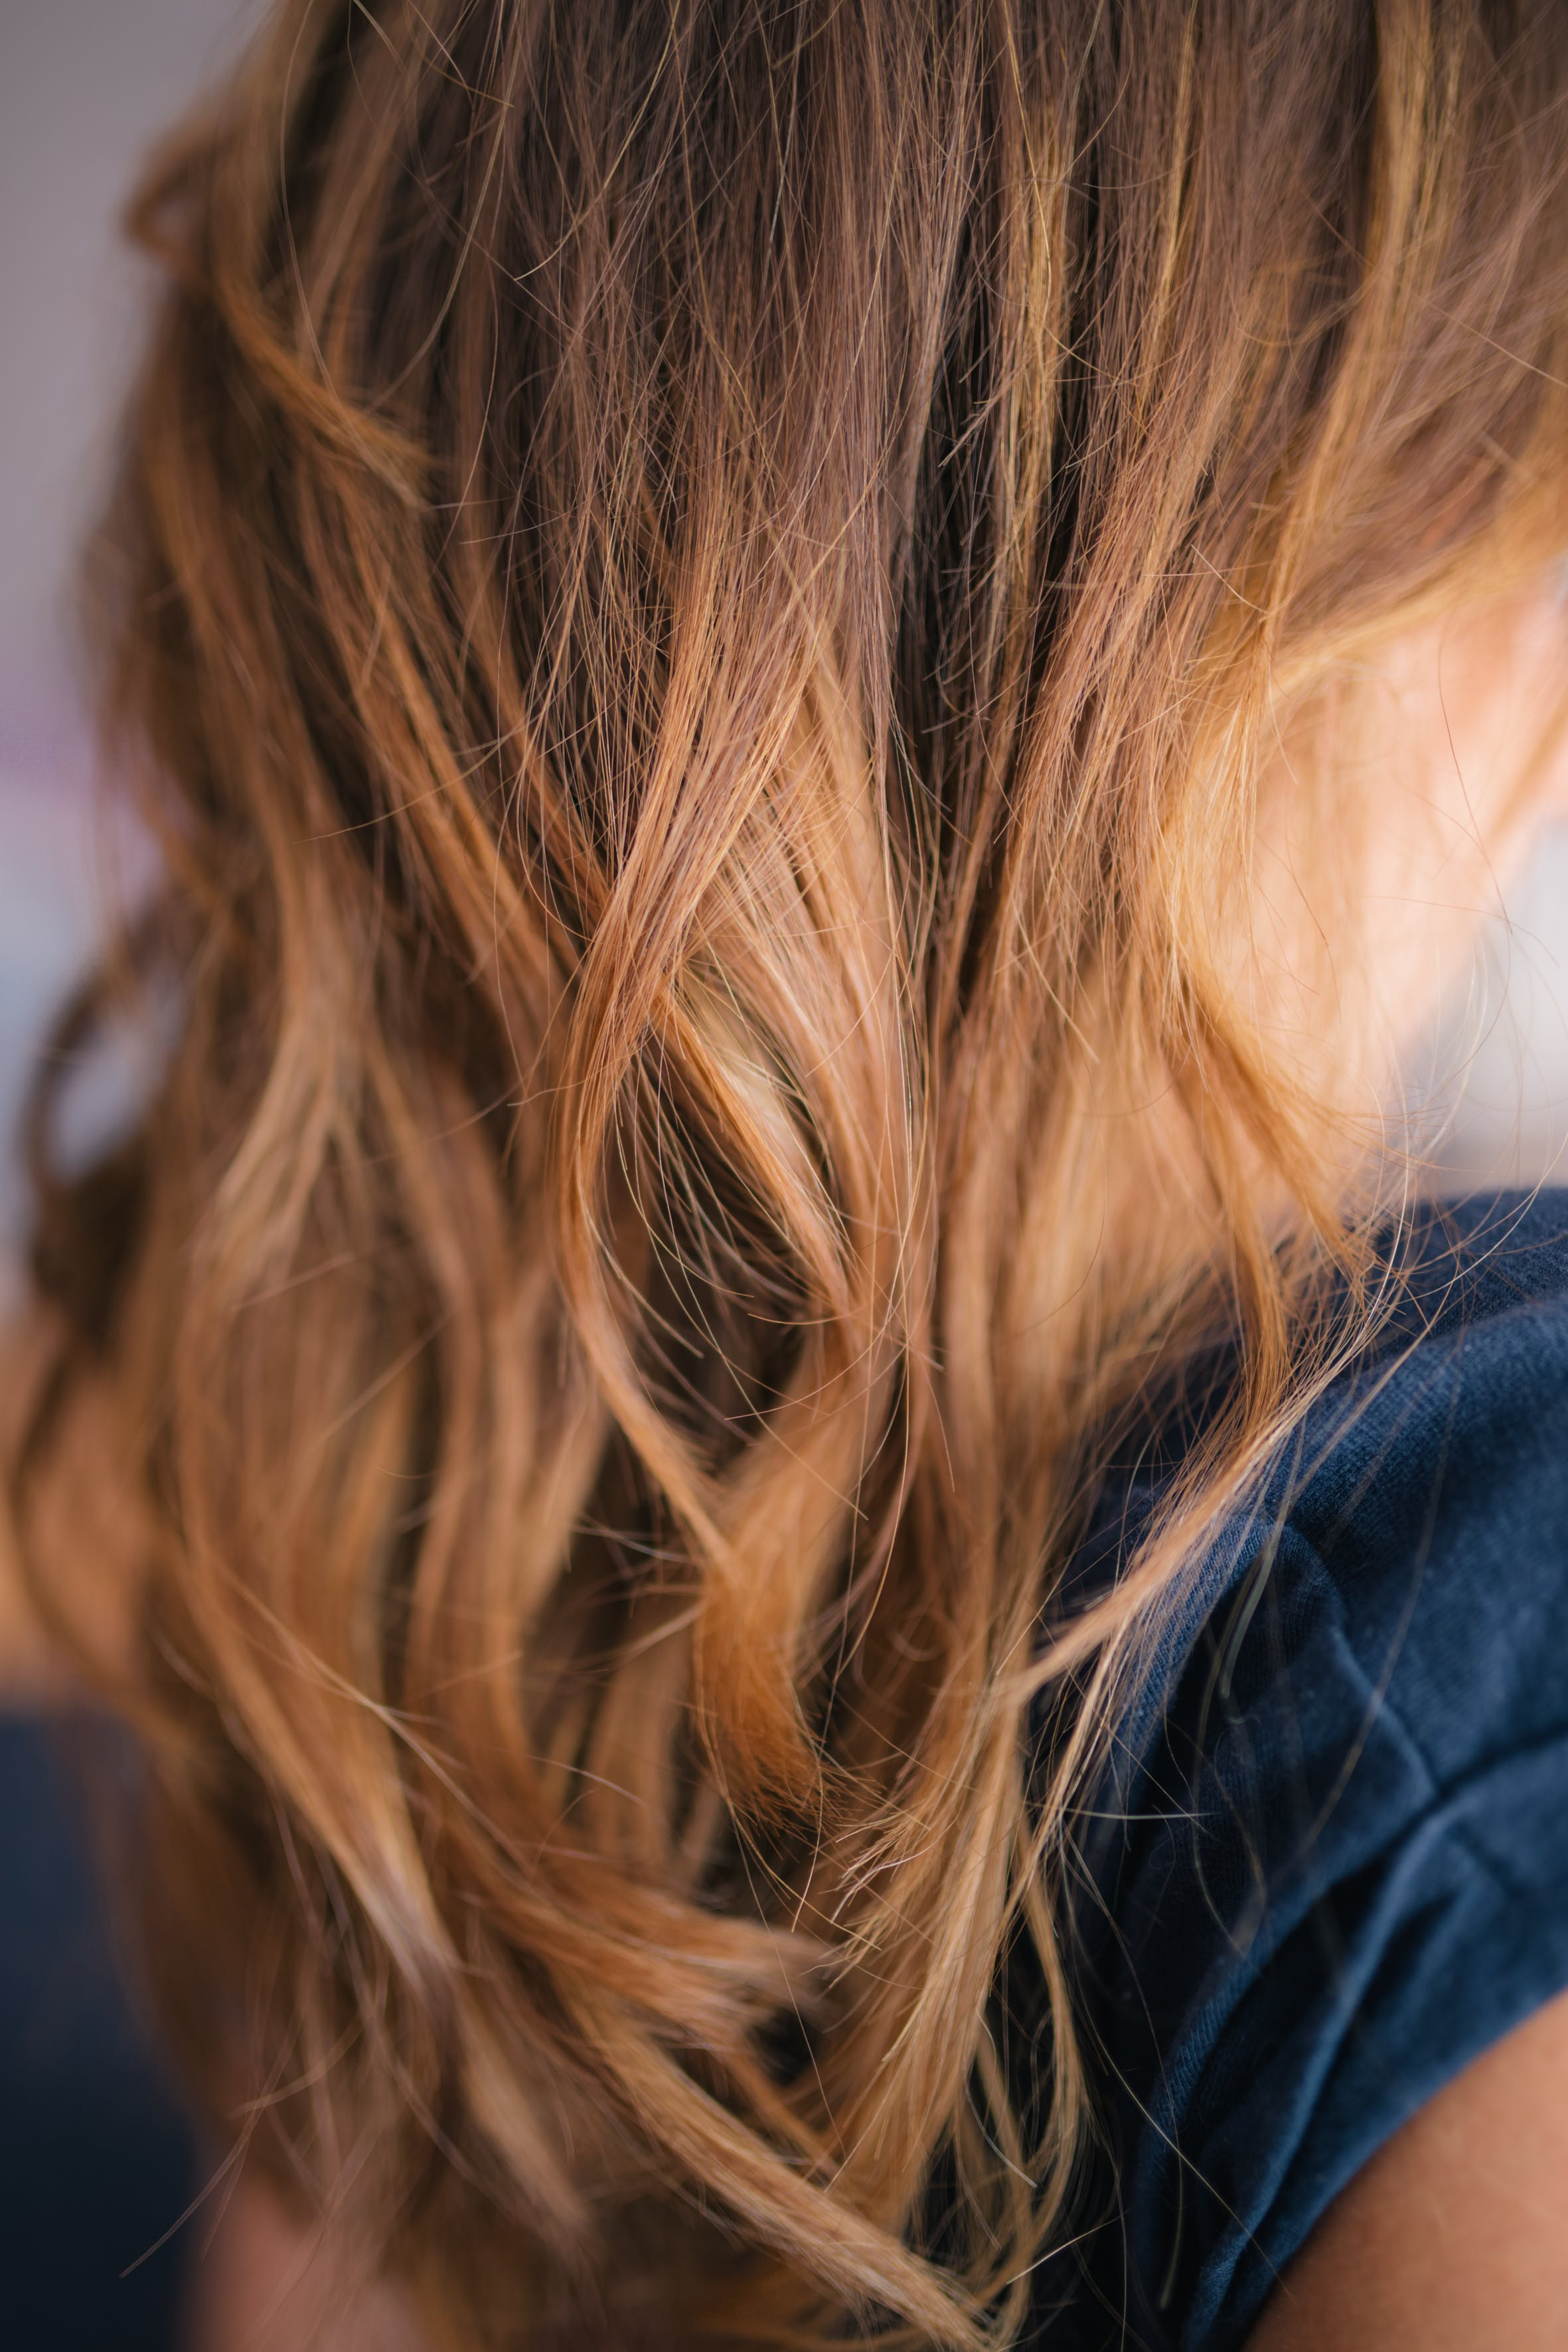 Free stock photo of girl, hair, curly, sombre